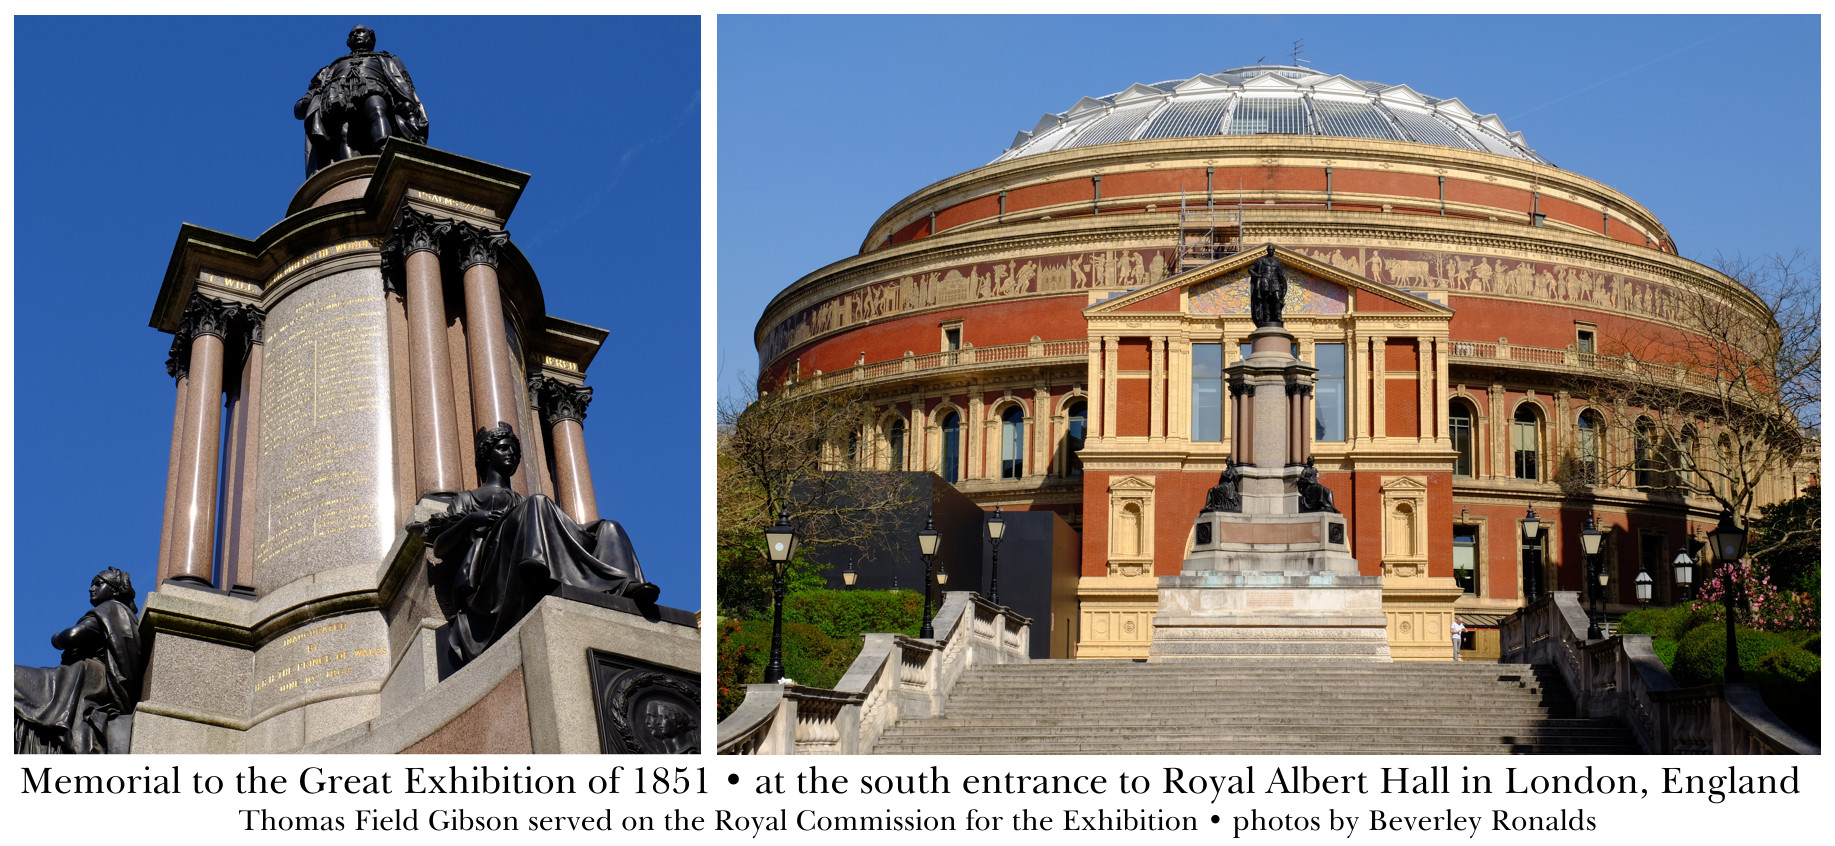 Memorial to the Great Exhibition of 1851 - south entrance to Royal Albert Hall